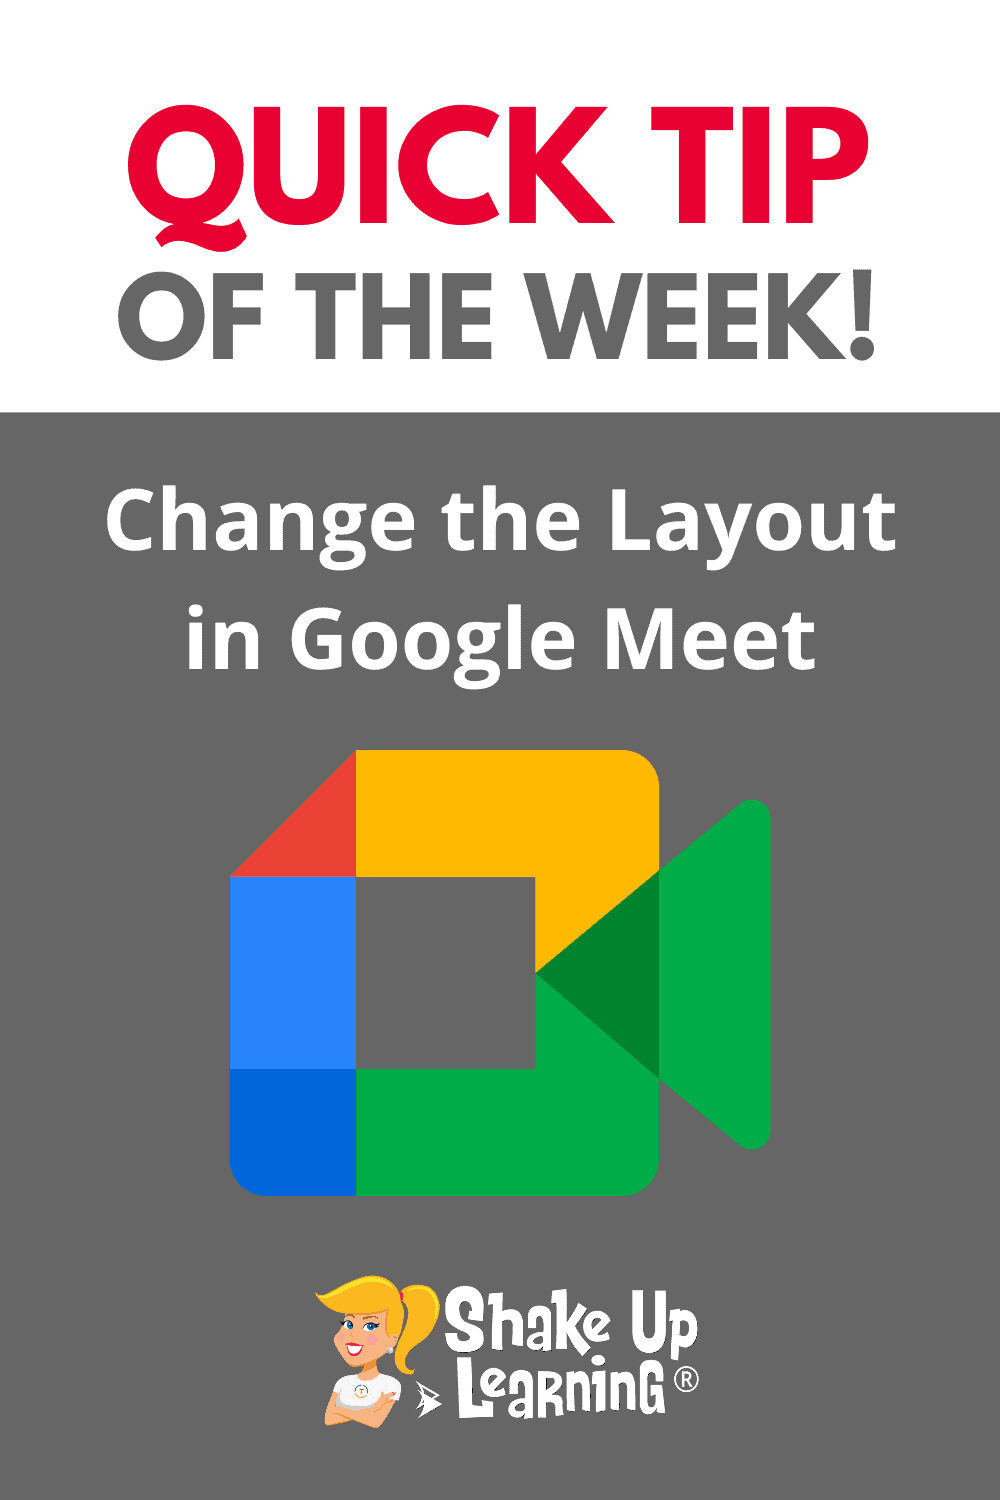 How to Change the Layout in Google Meet